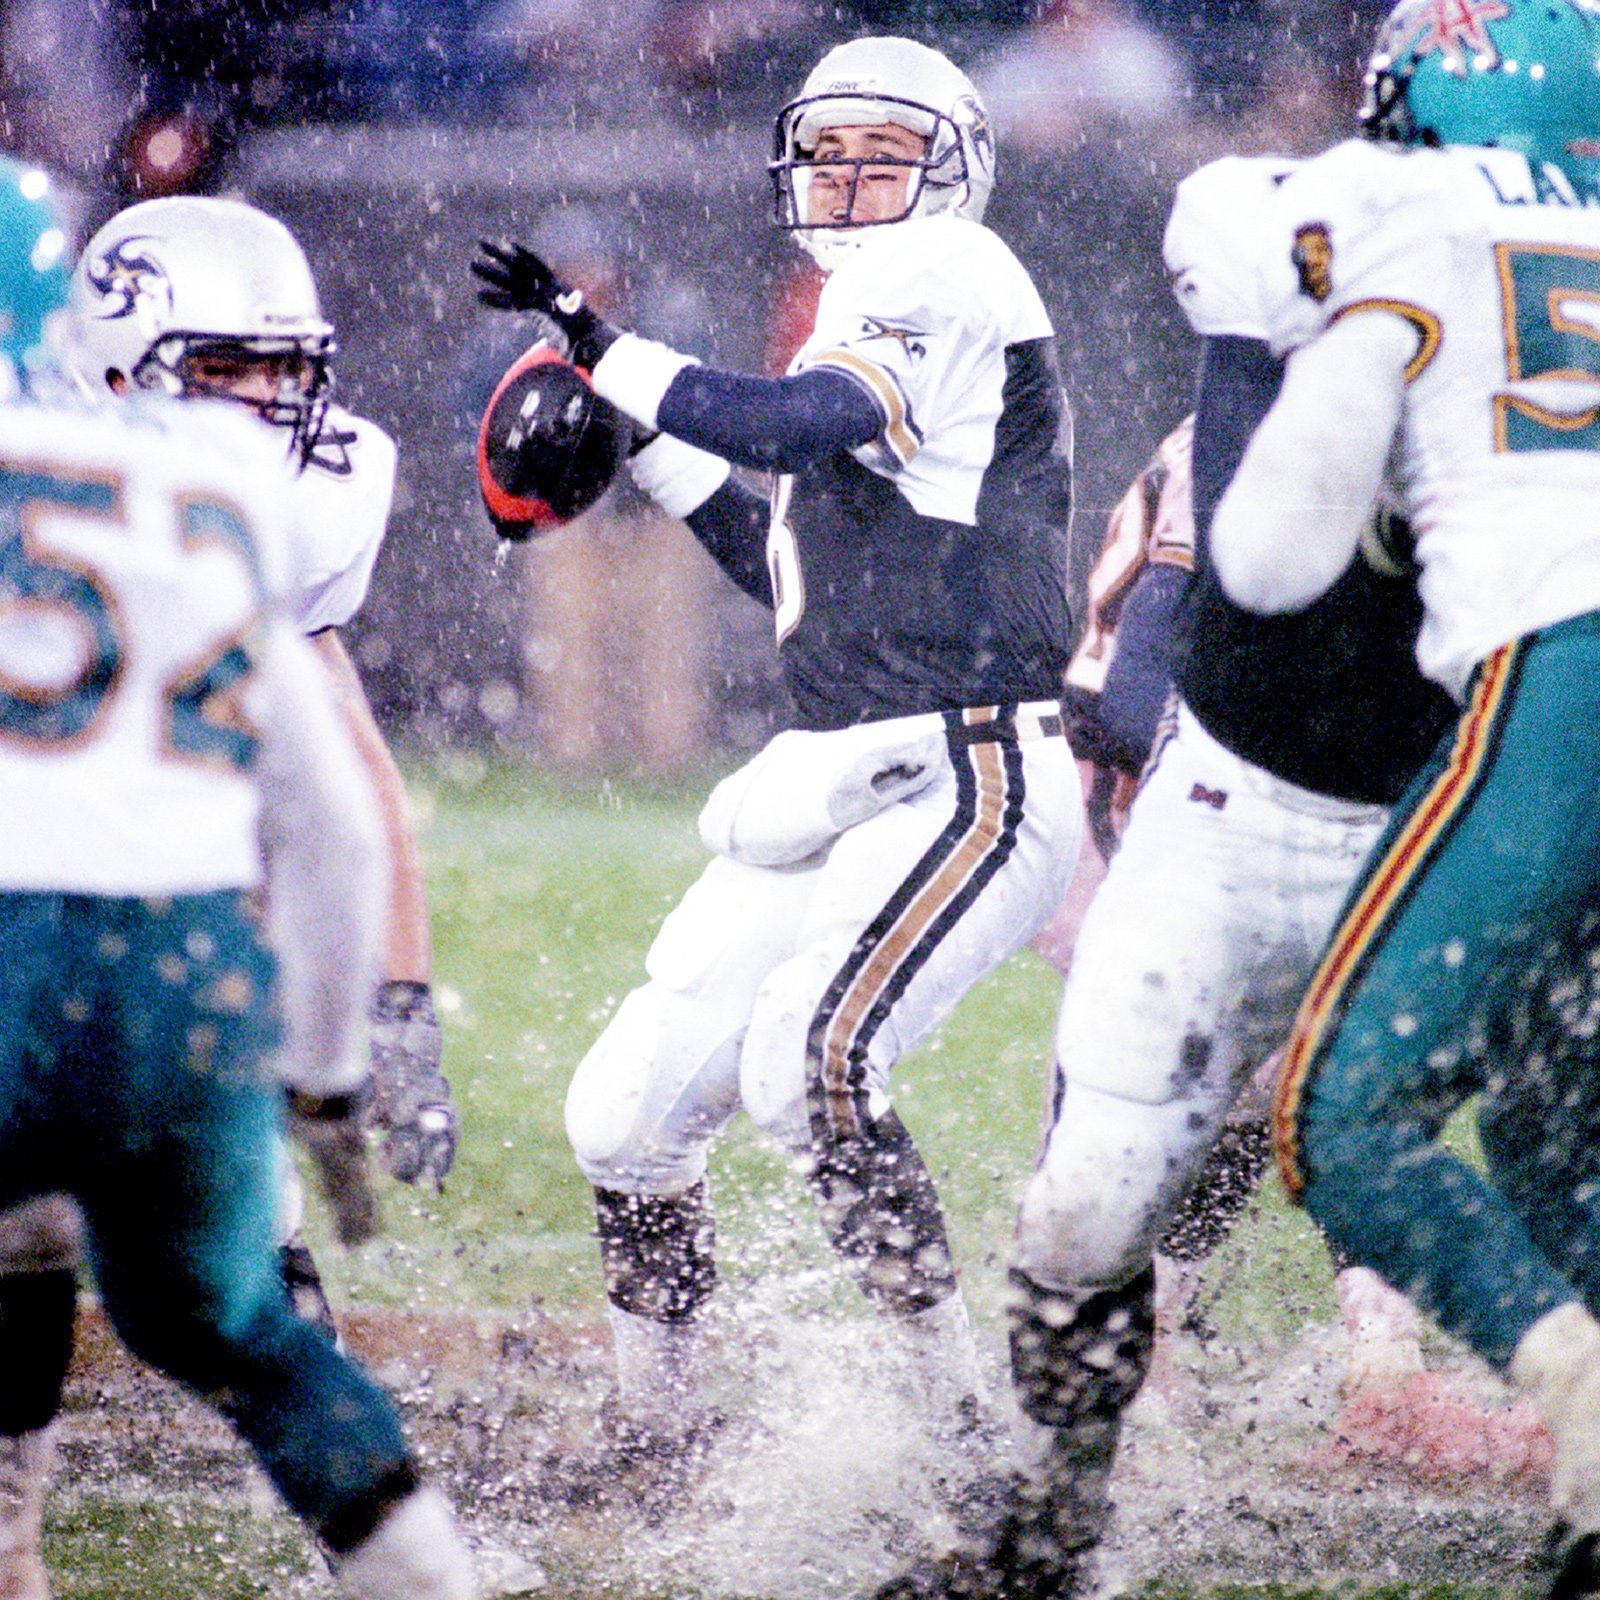 Xflmemories On Twitter Los Angeles Xtreme Quarterback Tommy Maddox In Action Against The Memphis Maniax At The Lacoliseum On Feb 25 2001 Xfl Https T Co Zqsfi3v1jo